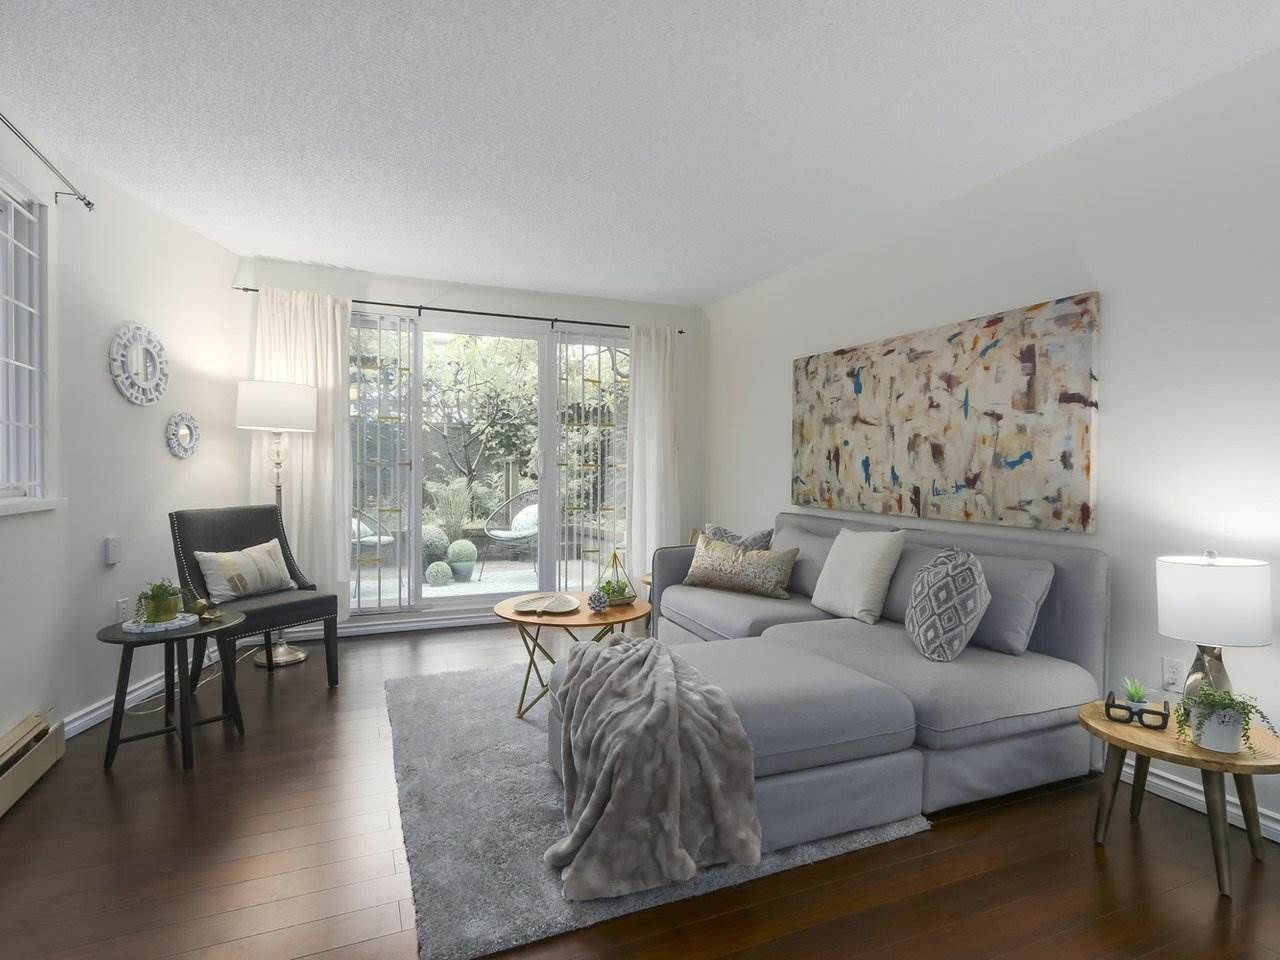 """Main Photo: 115 2033 TRIUMPH Street in Vancouver: Hastings Condo for sale in """"MACKENZIE HOUSE"""" (Vancouver East)  : MLS®# R2370575"""